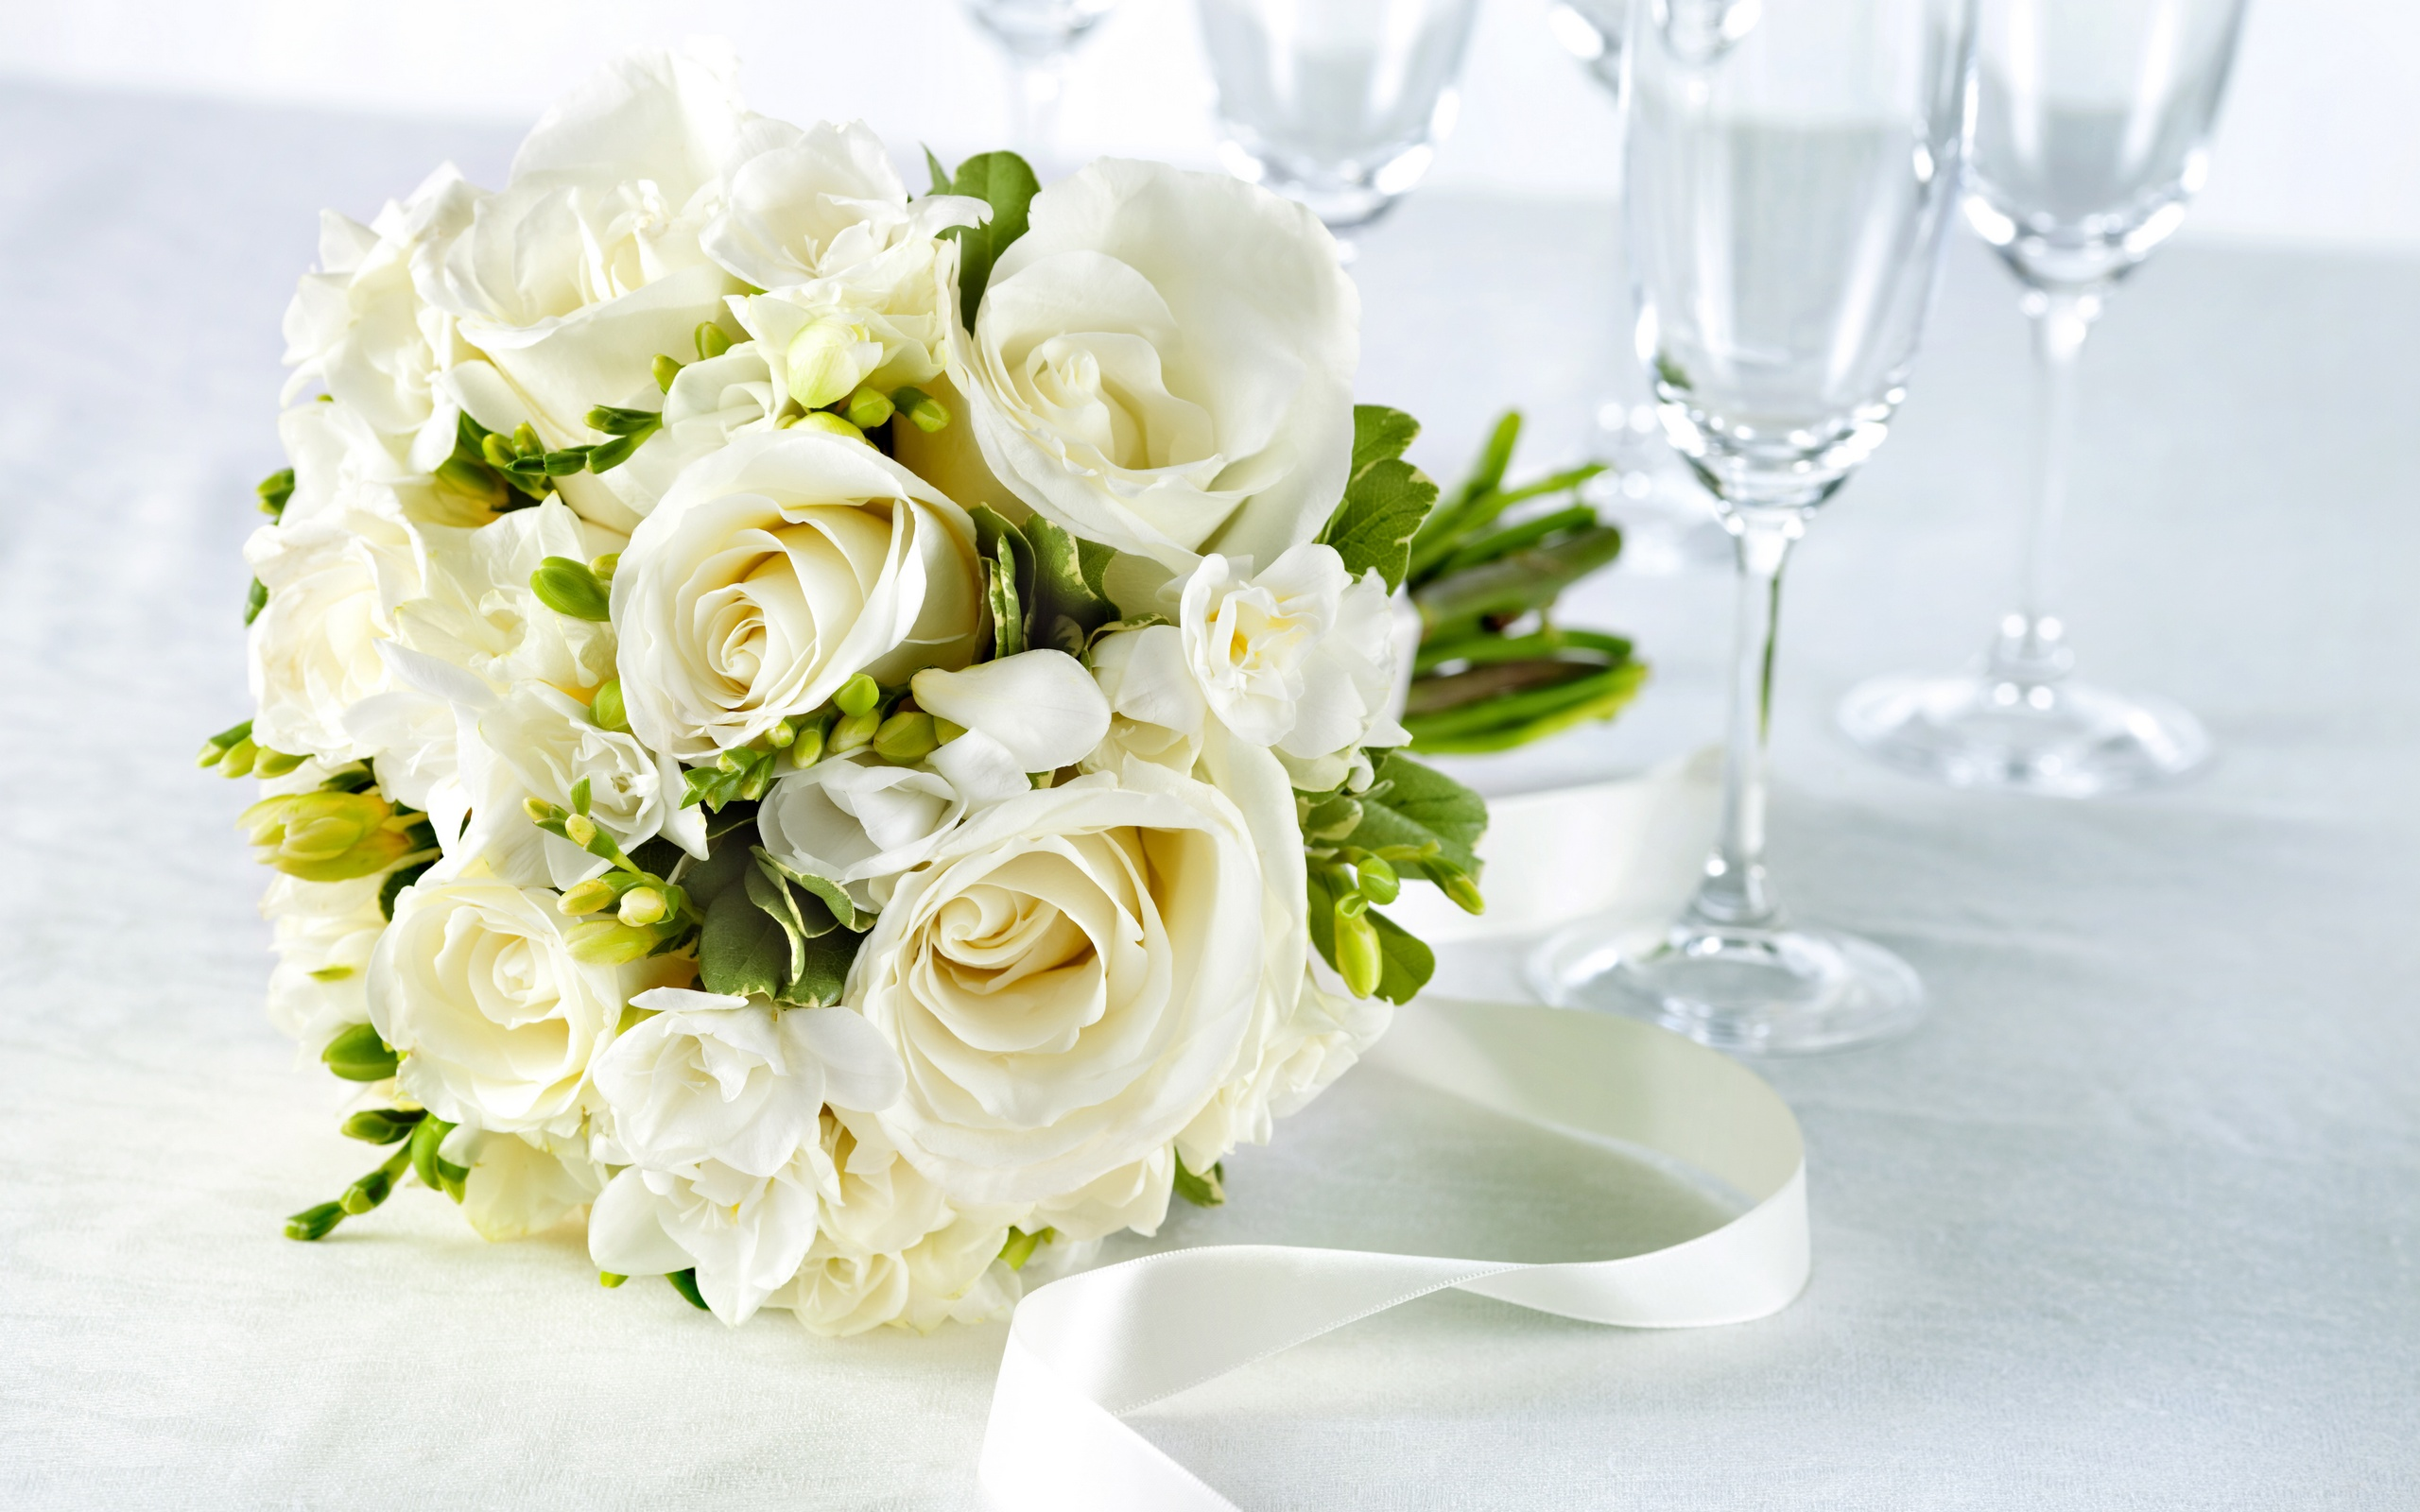 White Images White Rose Hd Wallpaper And Background Photos 34727338